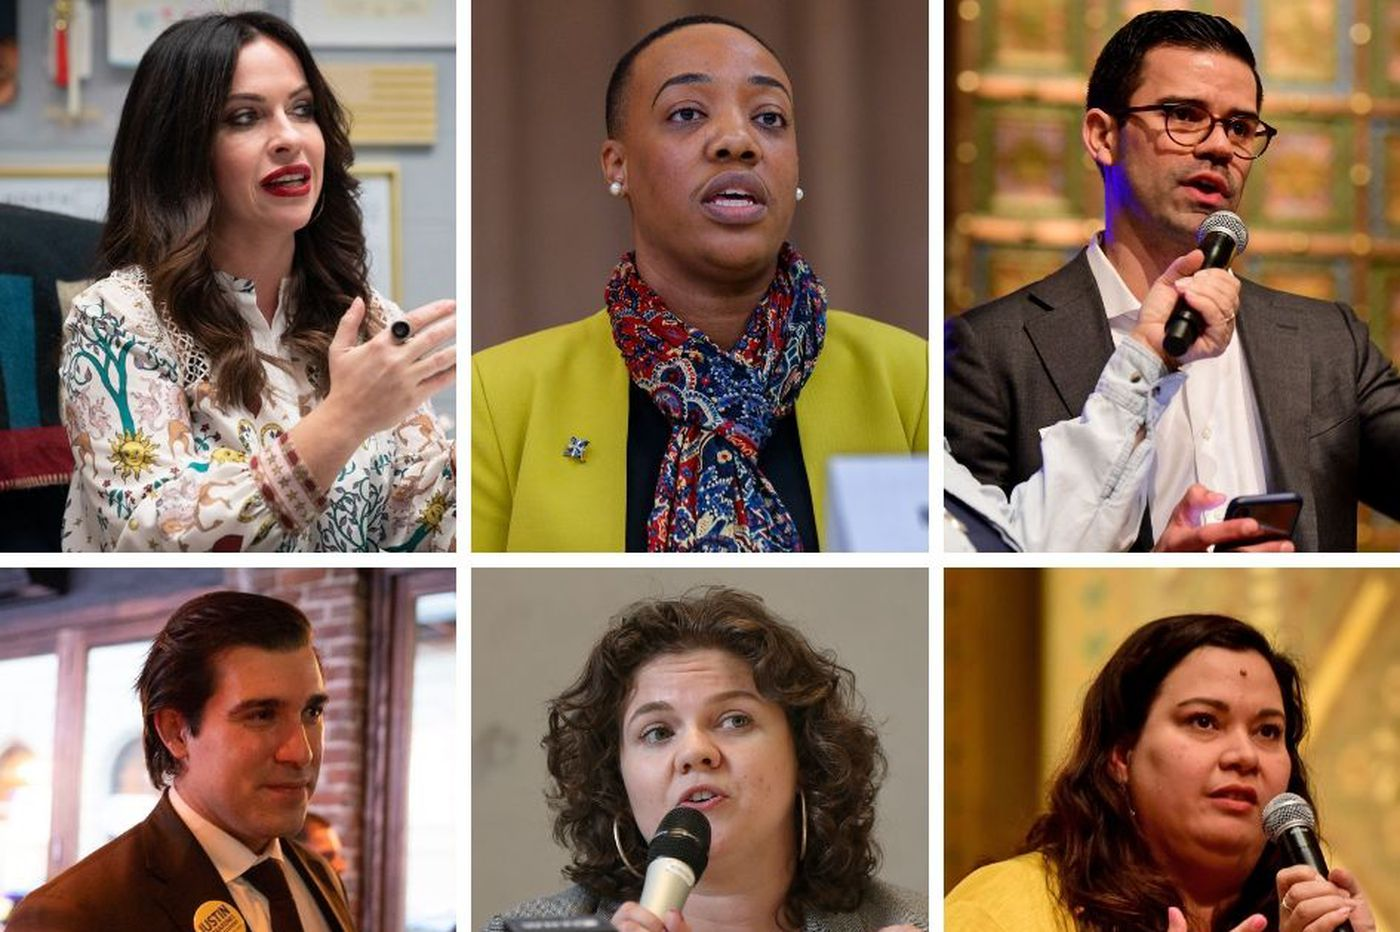 Seven first-time candidates on what they learned from running in the 2019 Philly primary   Perspective